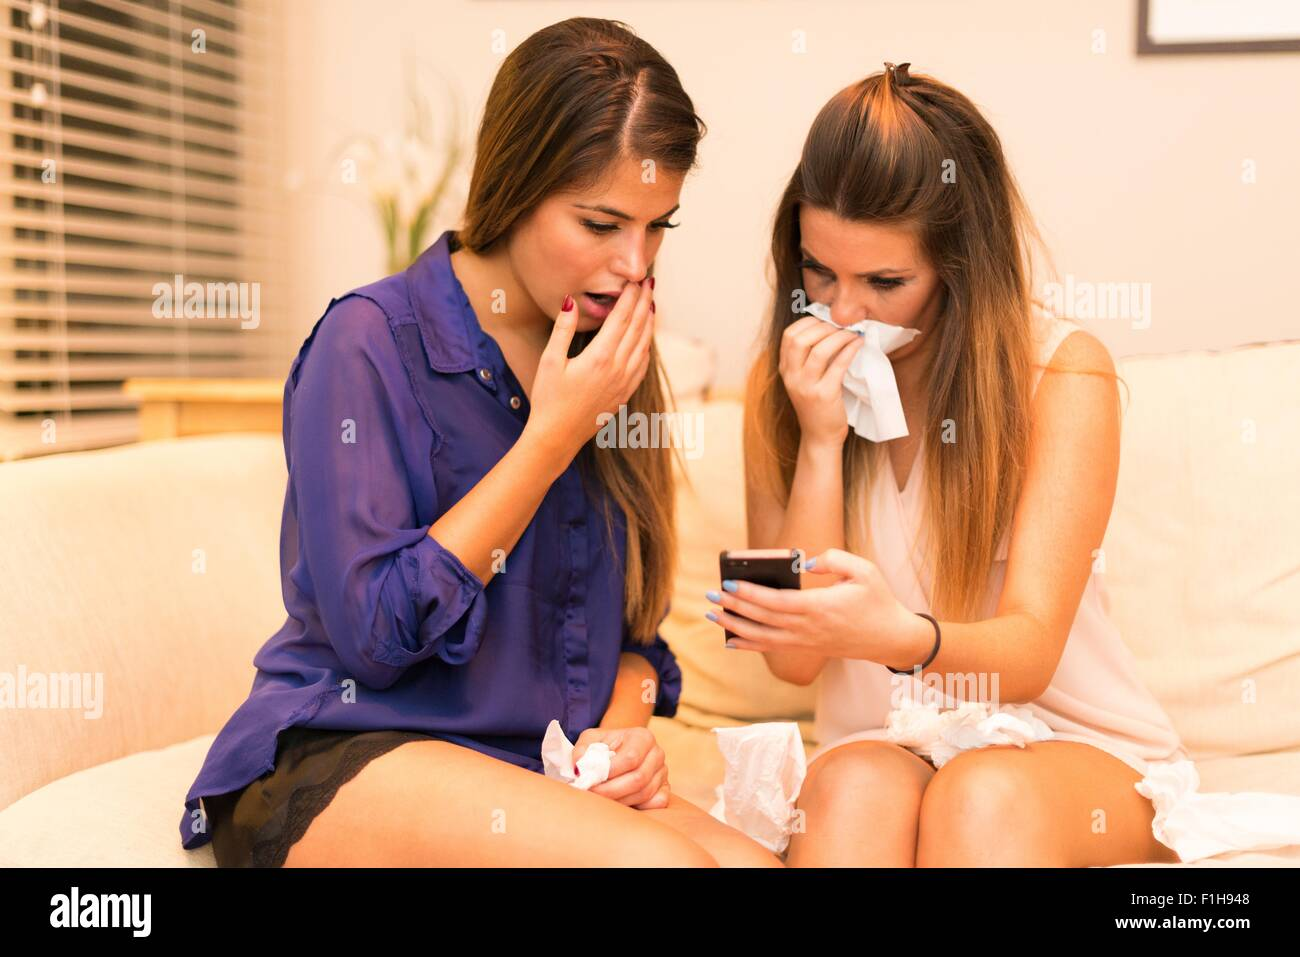 Two young women, sitting on sofa looking at smartphone, shocked expression - Stock Image